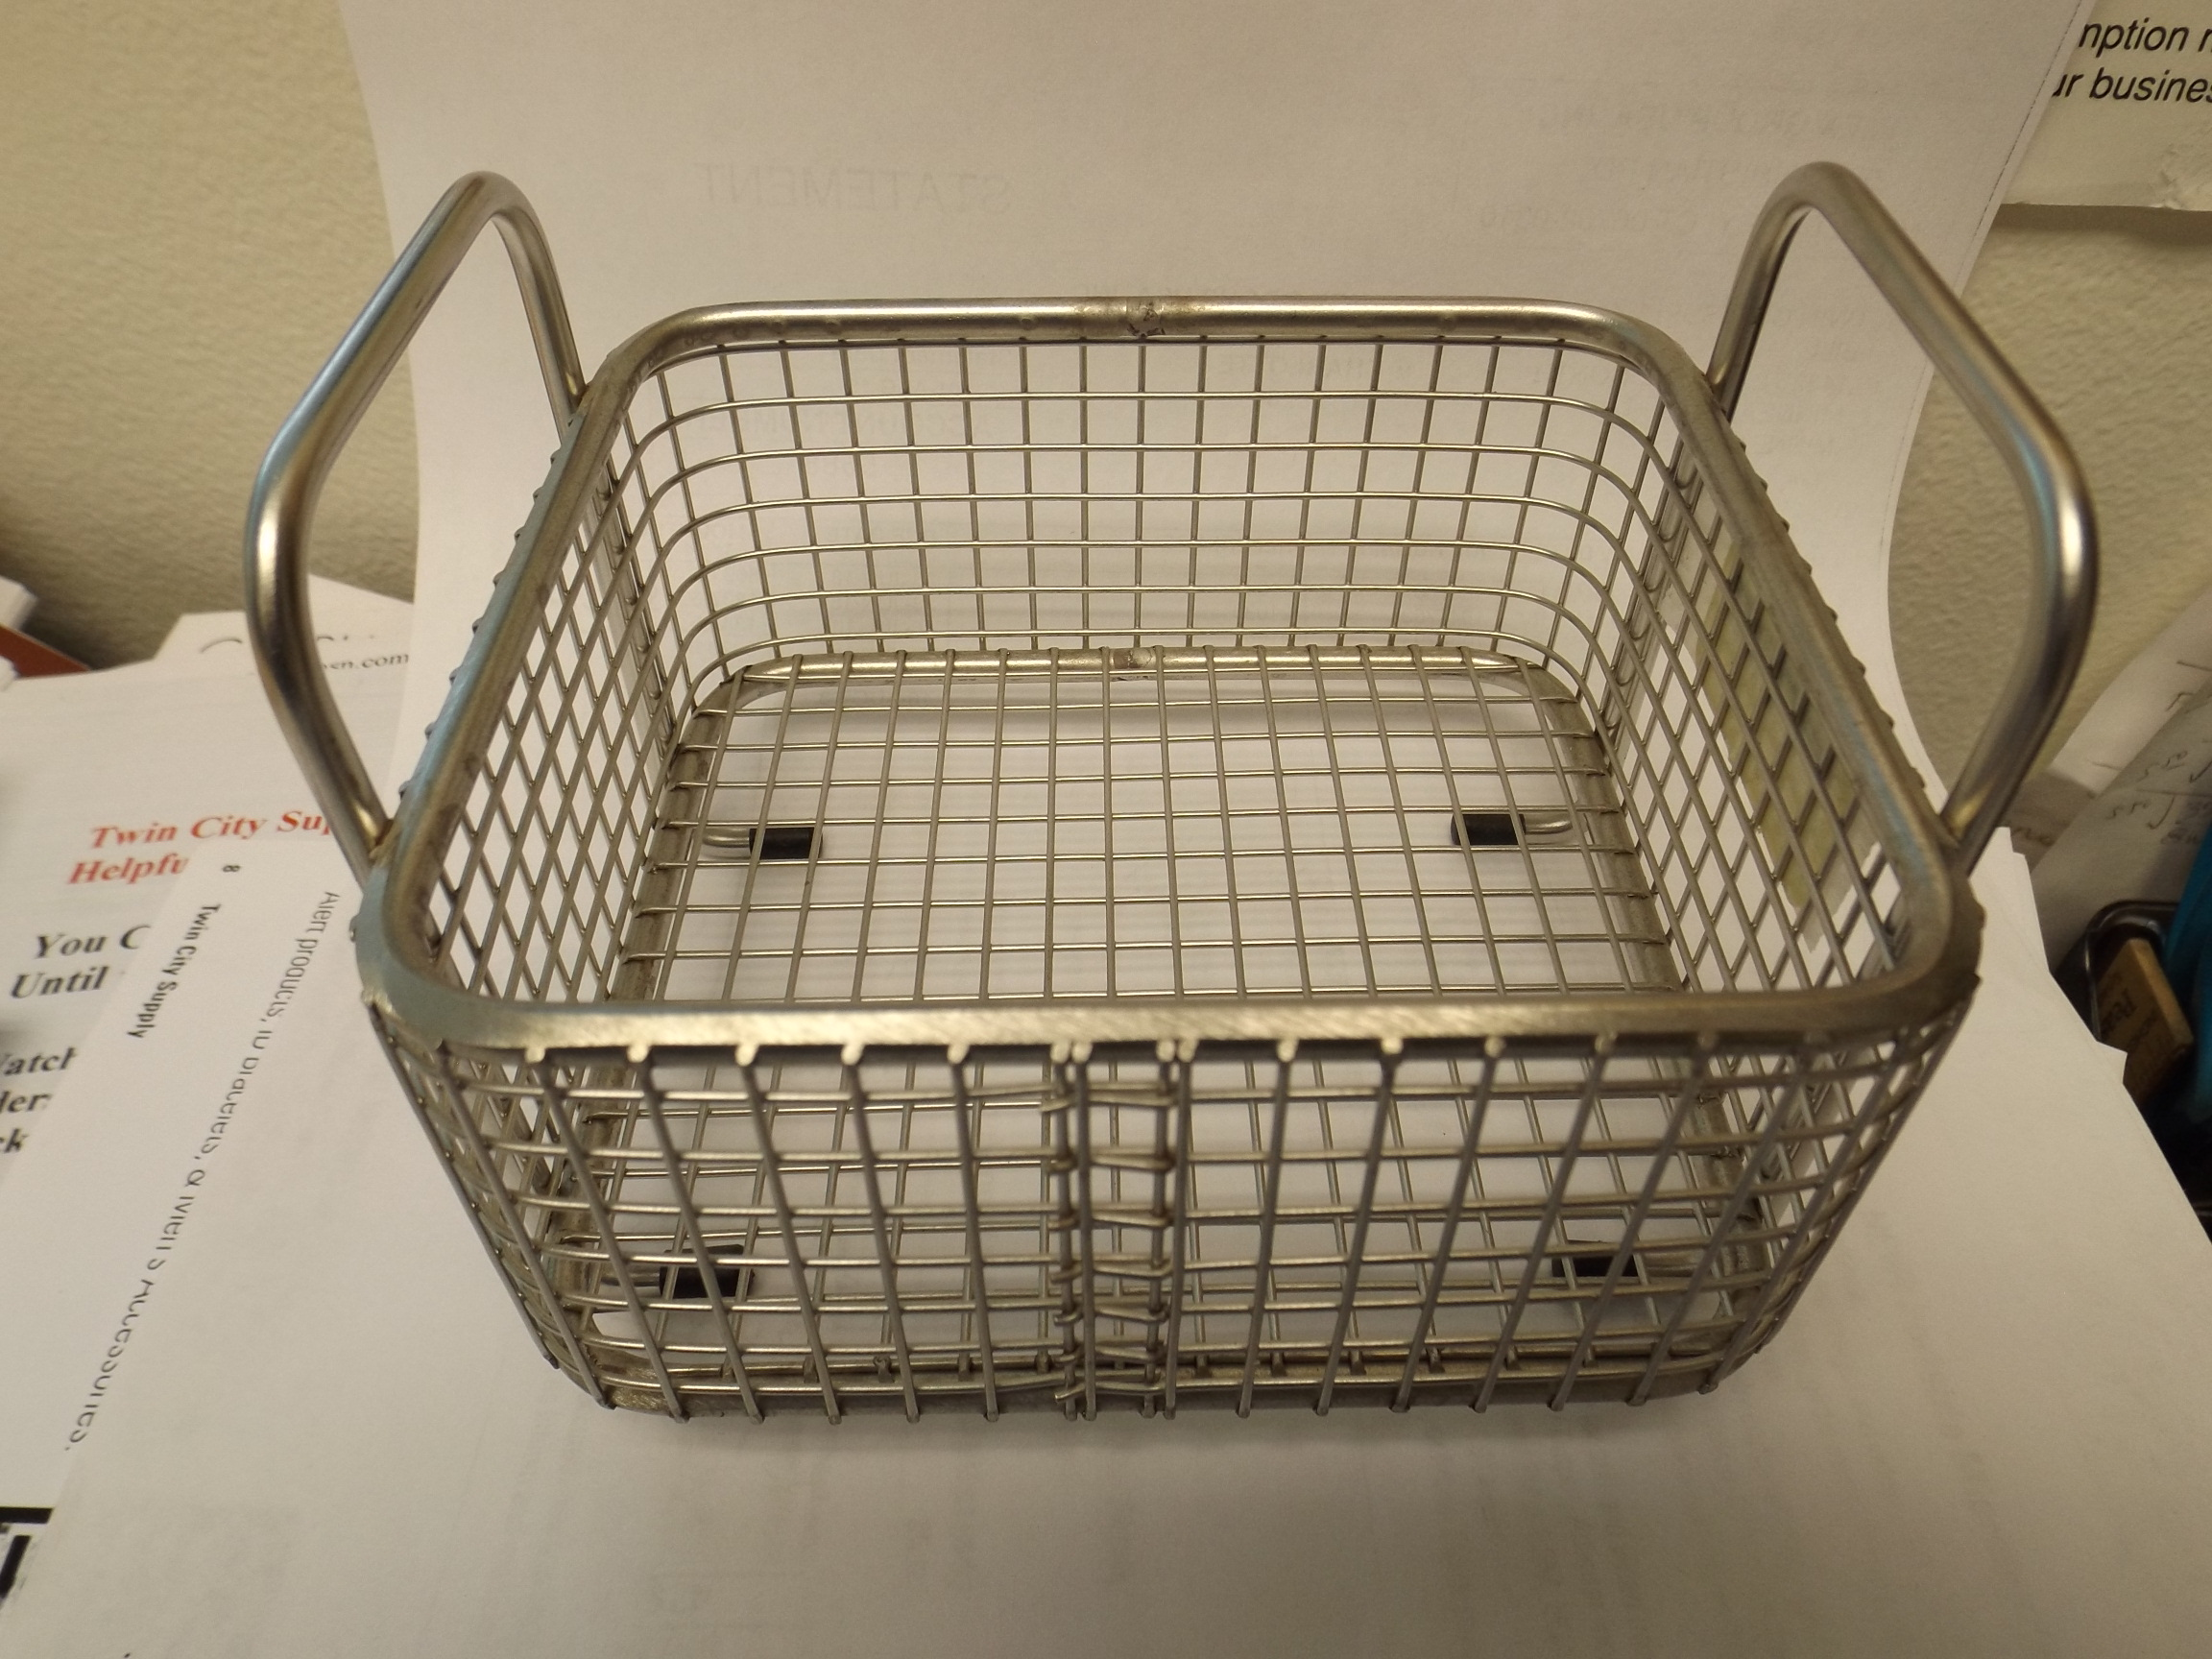 CL1708 Stainless Steel Mesh Basket for Ultrasonic Machines-- Newall- last One!